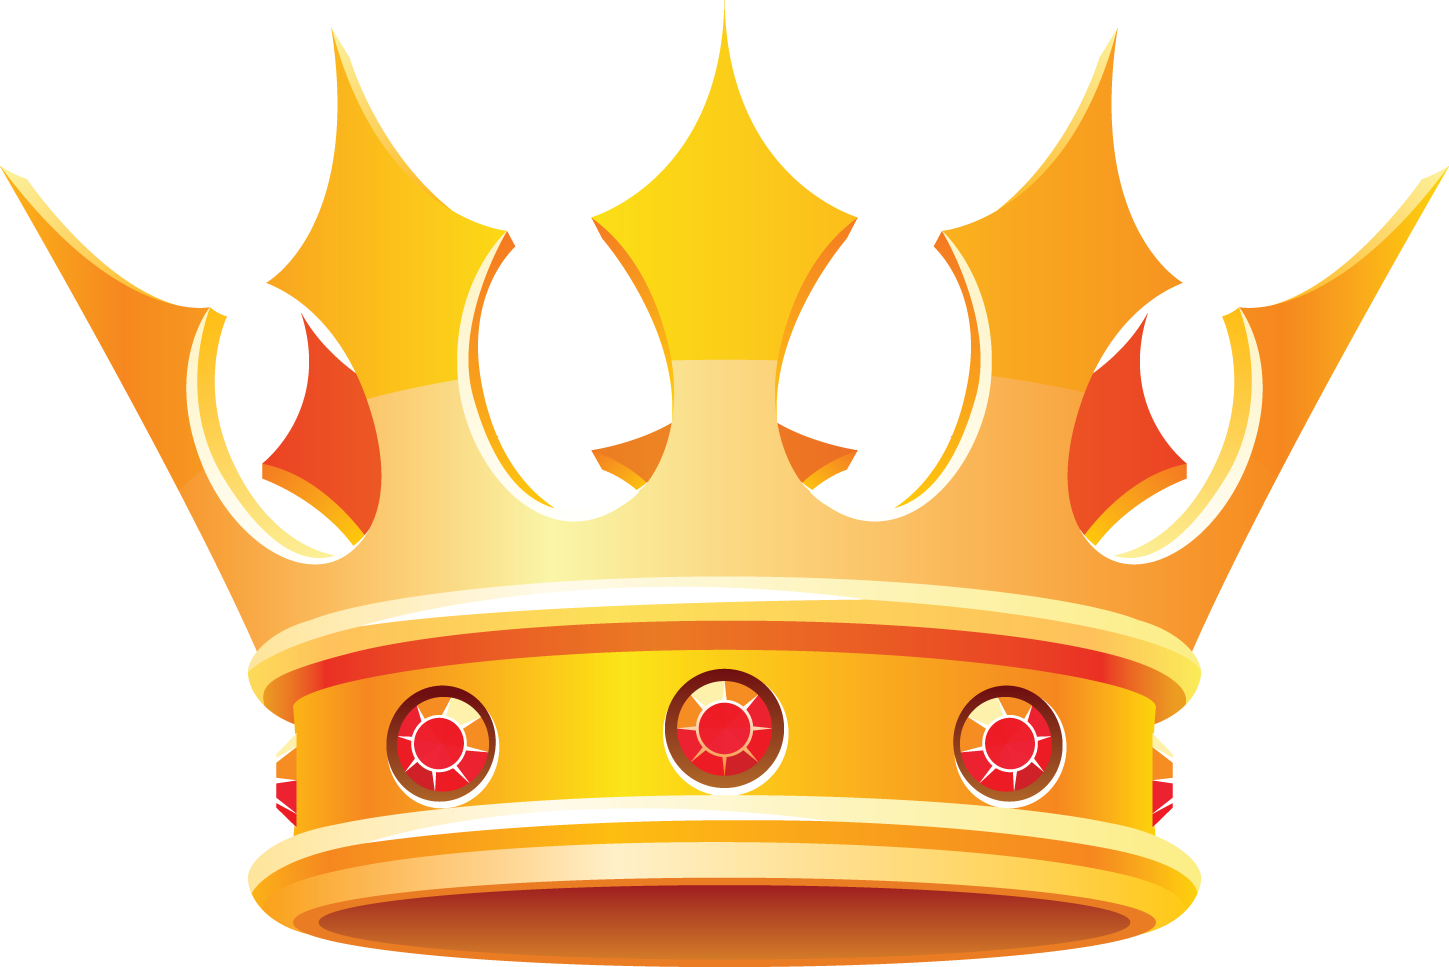 queen crown clipart at getdrawings com free for personal use queen rh getdrawings com crown clipart template crown clipart images